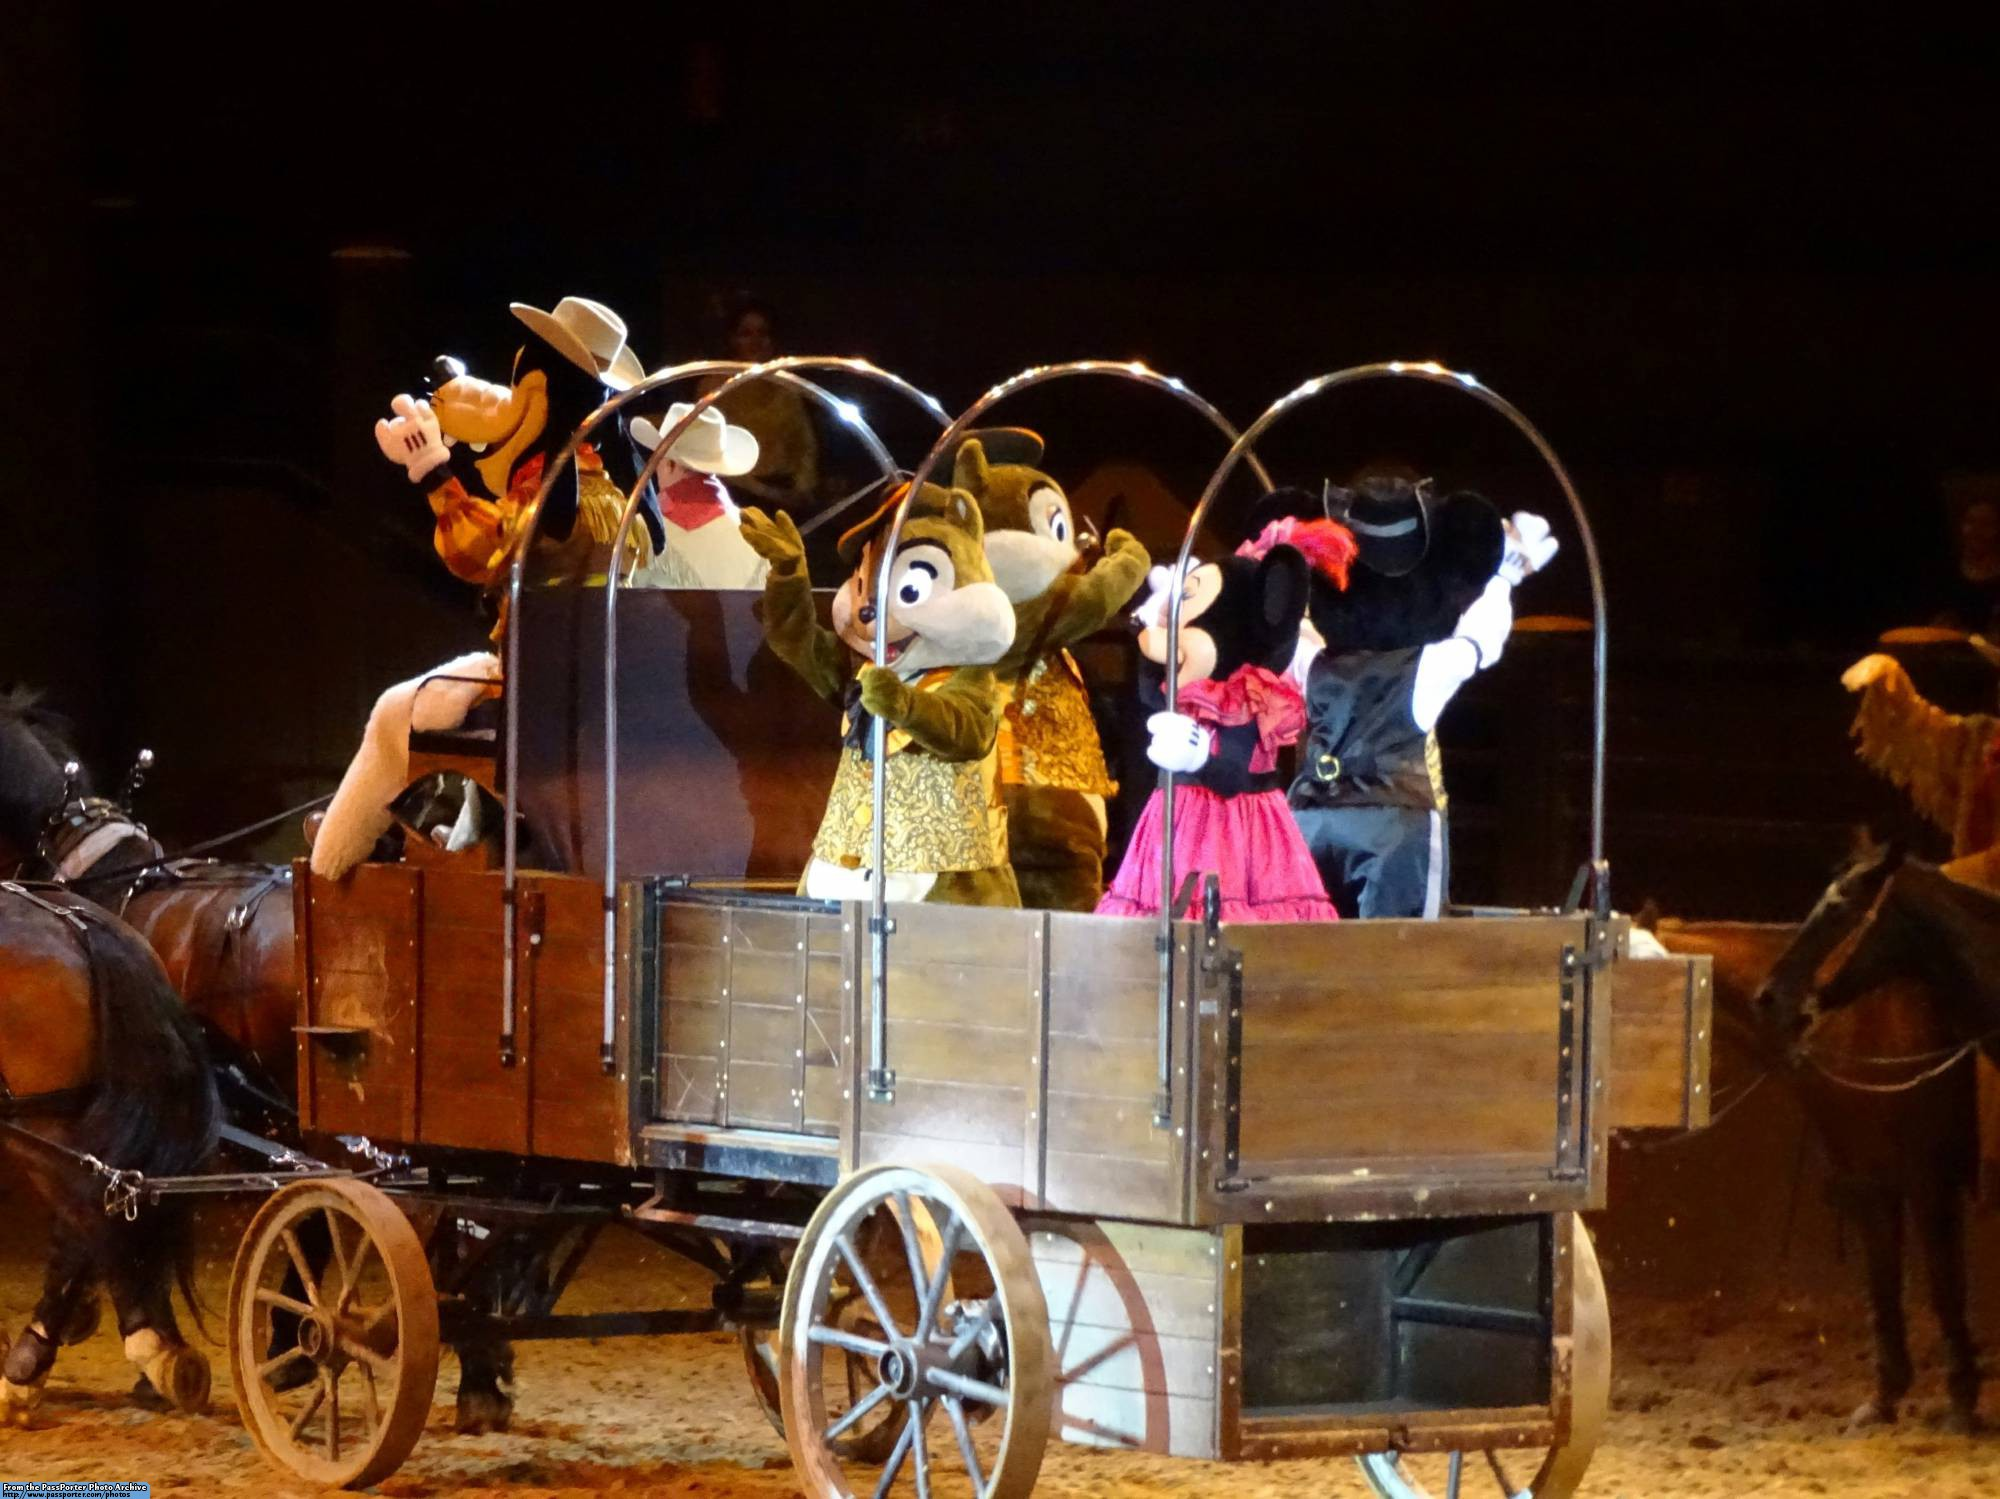 Enjoy Buffalo Bill's Wild West Dinner Show at Disneyland Paris |PassPorter.com